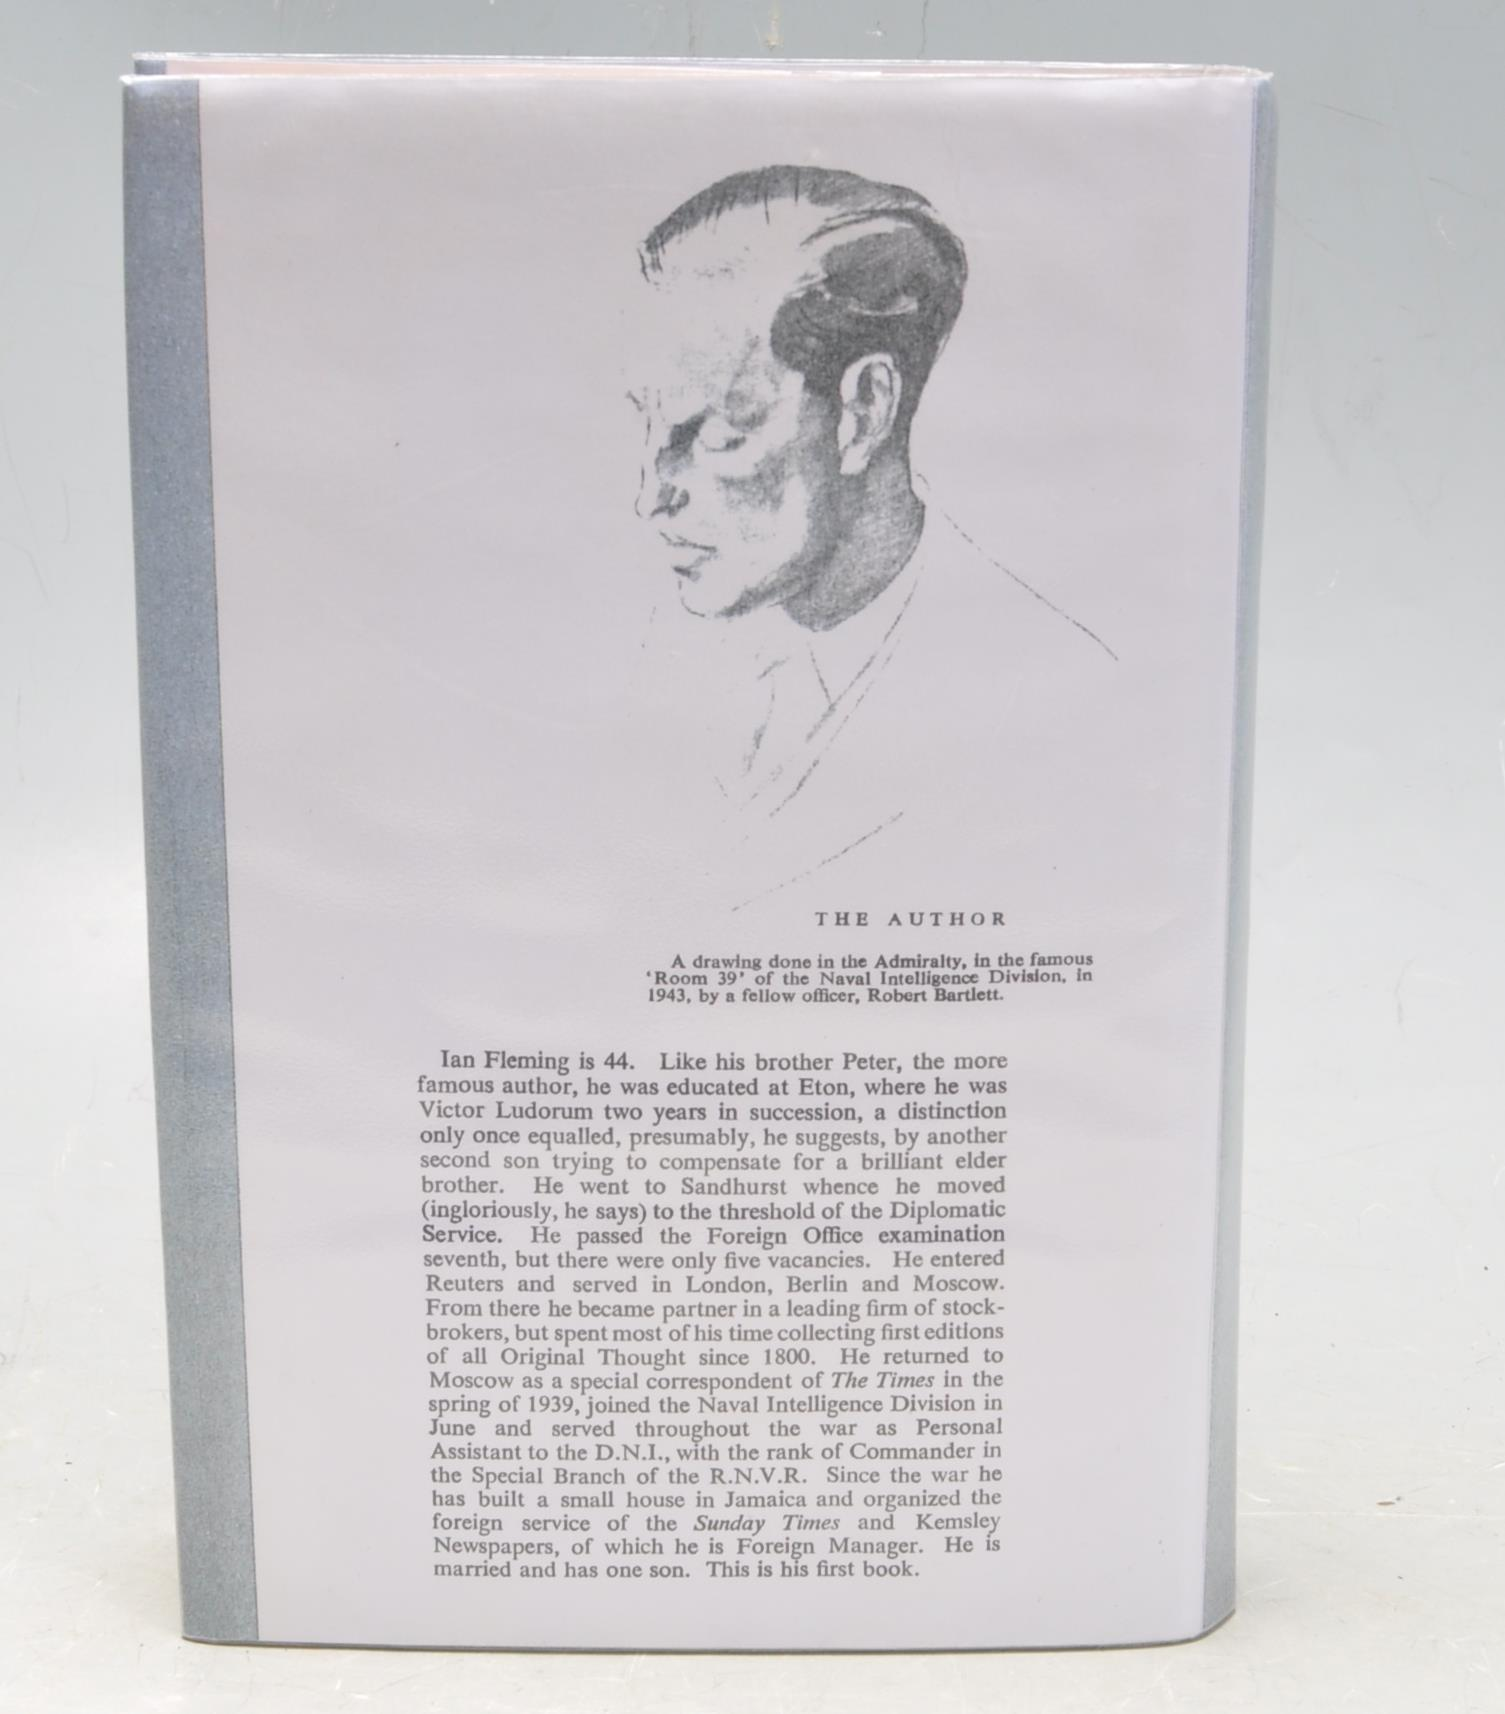 FIRST EDITION CASINO ROYALE BY IAN FLEMING - Image 3 of 7